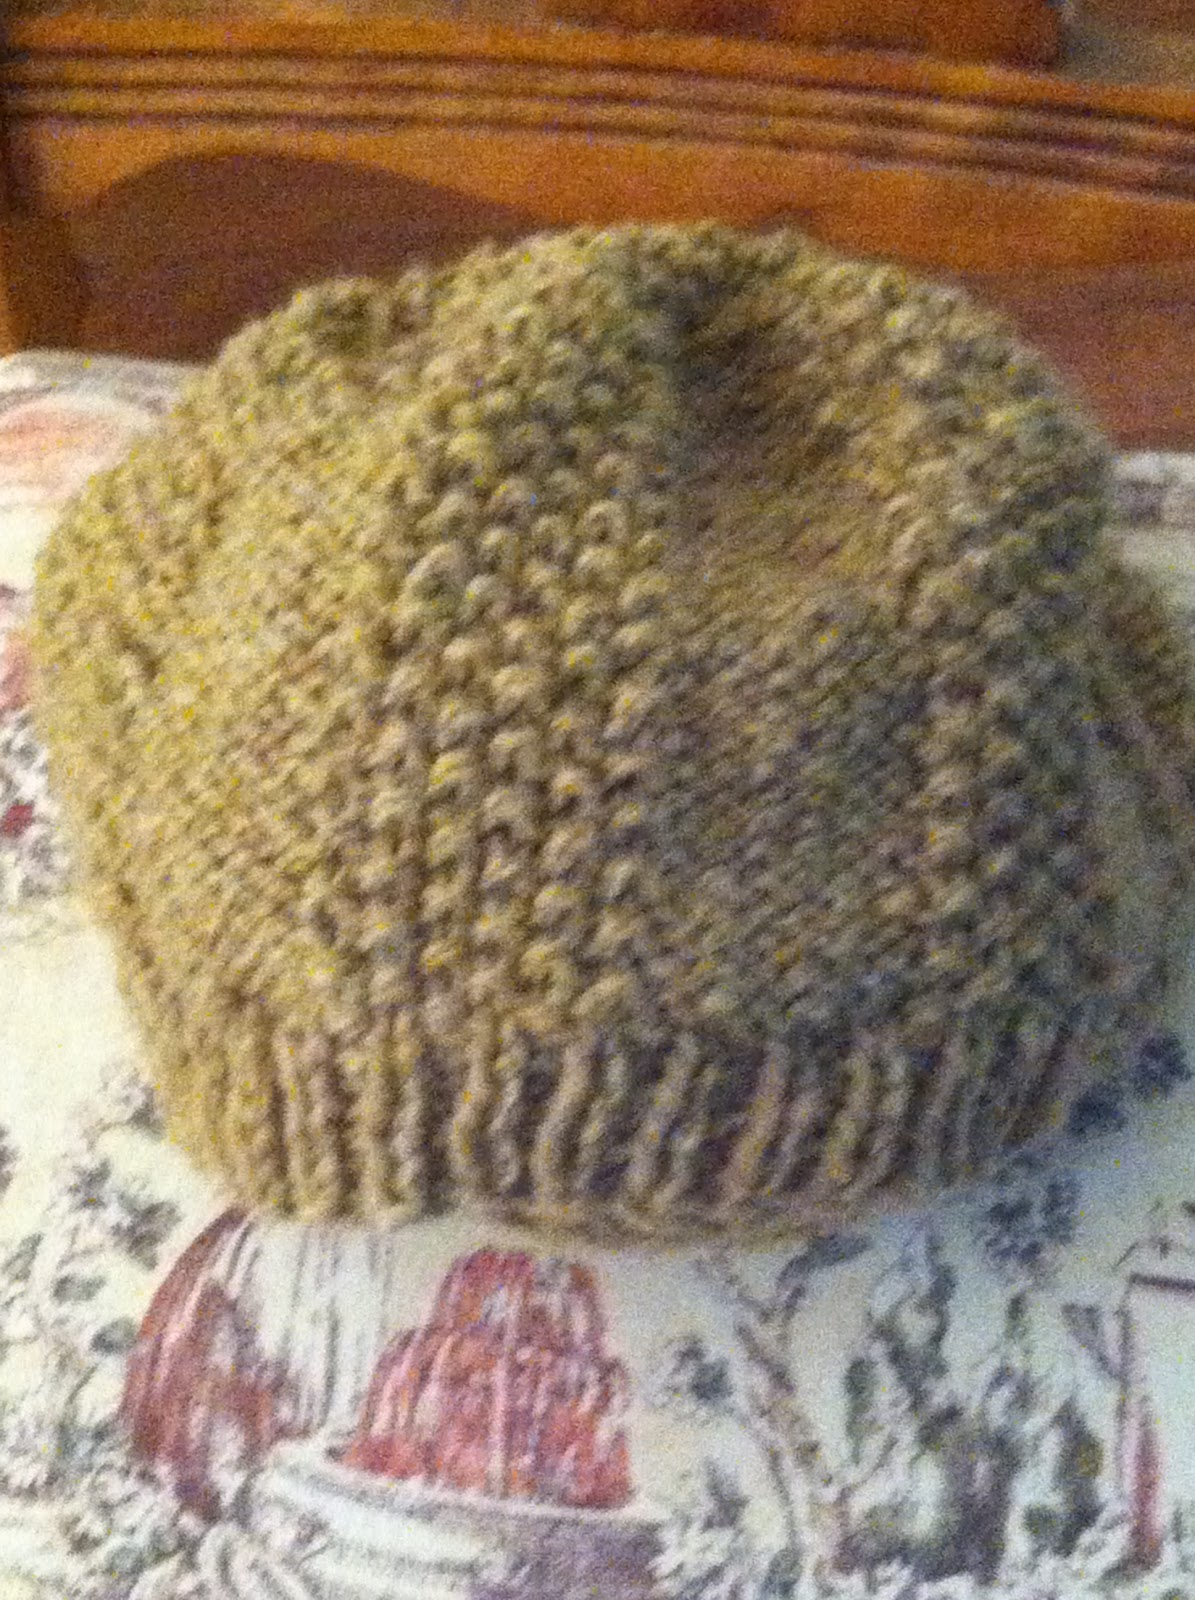 Knitting Stitches On Needle : Stitches on My Needle: Knit Hats -- A Quick Gift and Fun to Knit